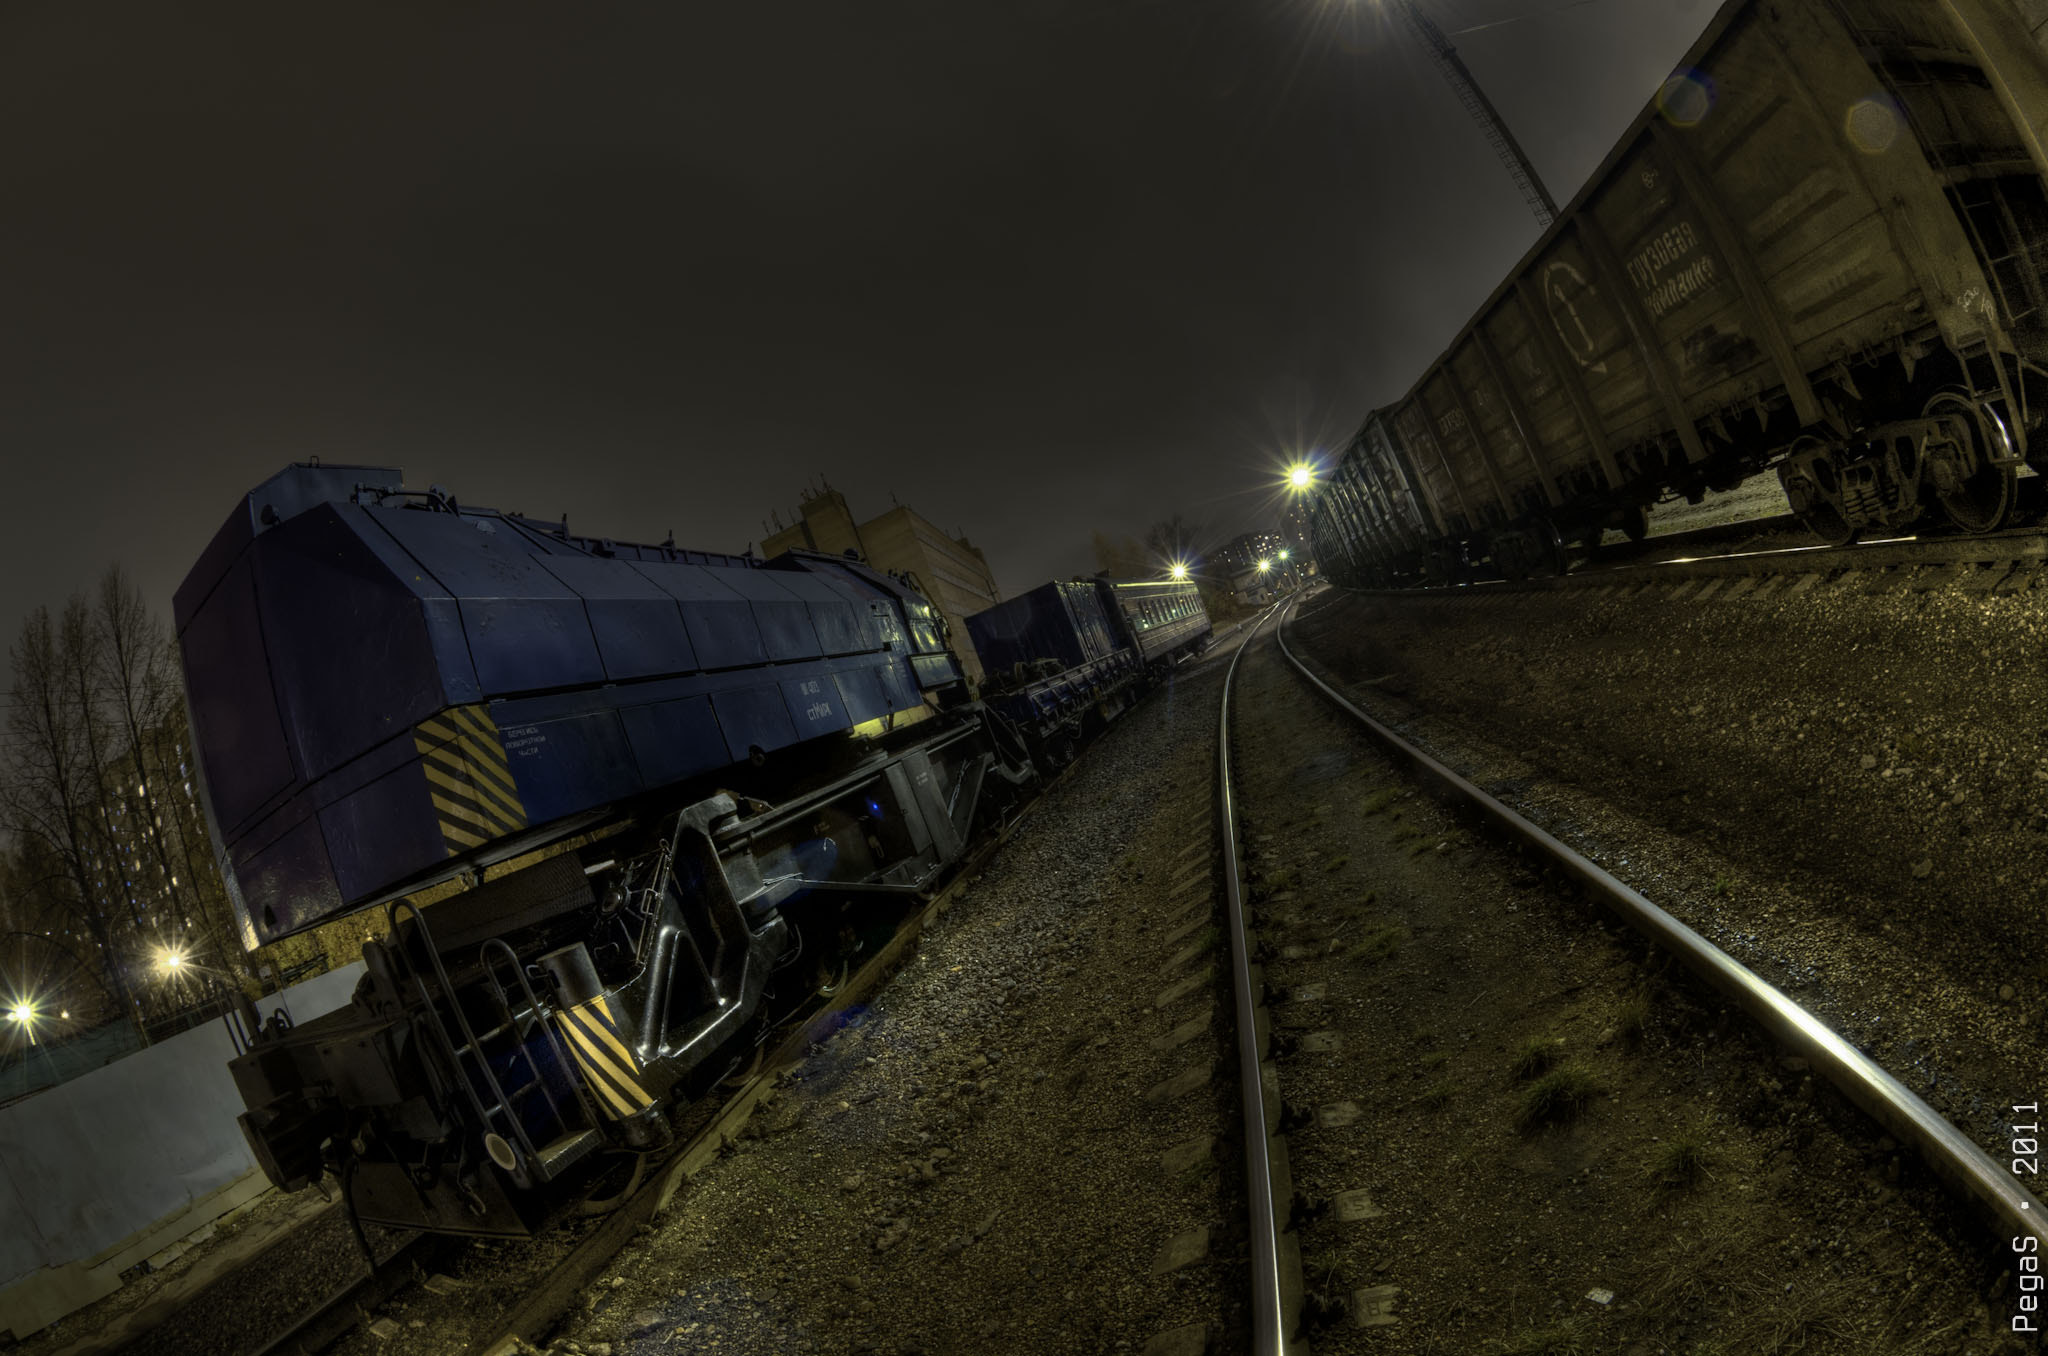 Photograph Sleeping Trains by Eugene Piven on 500px